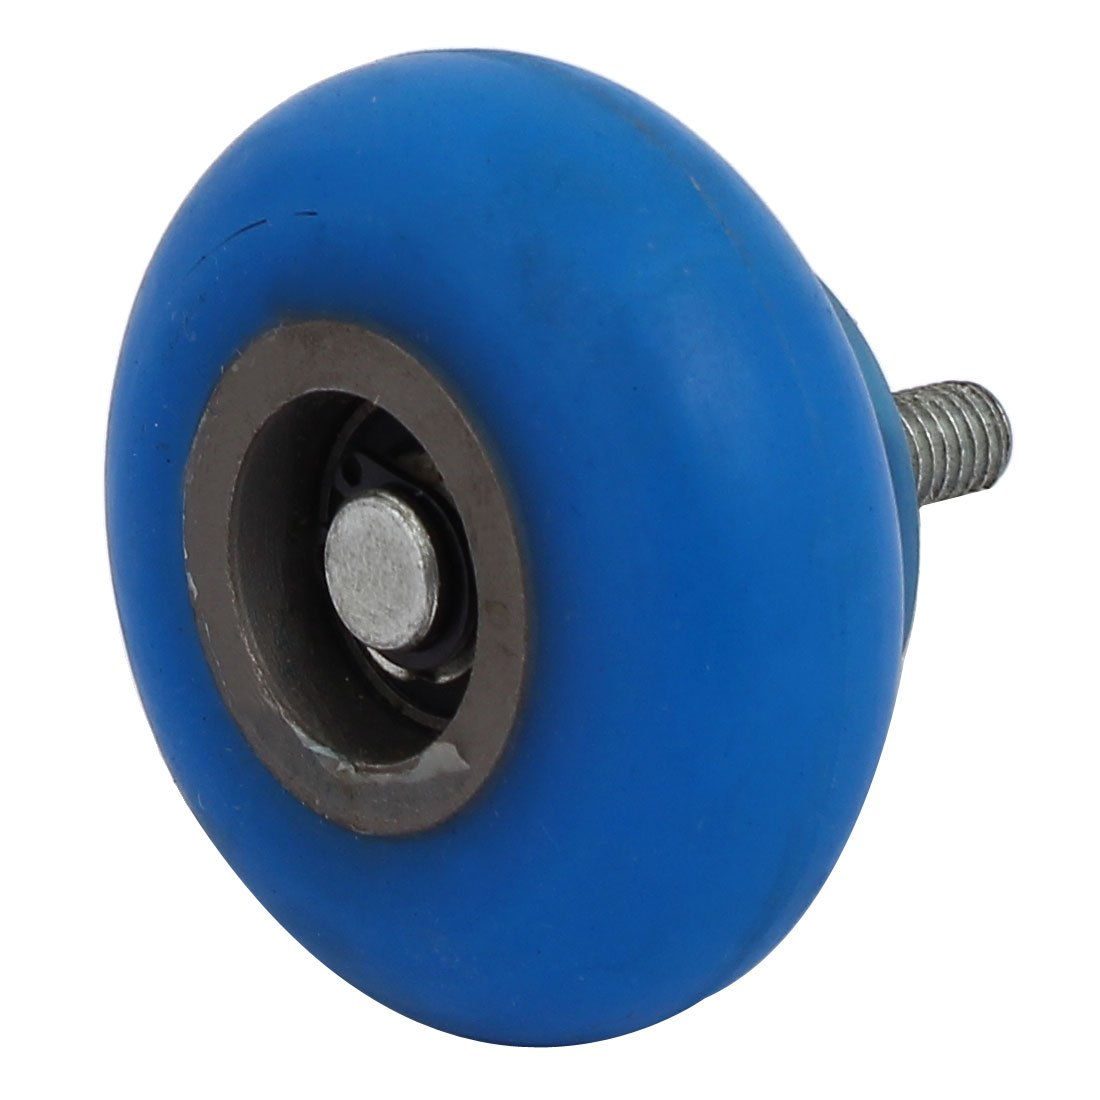 uxcell M8 Thread Dia 60mm x 30mm R10 Coating Machine Silicon Rubber Wheel Roller